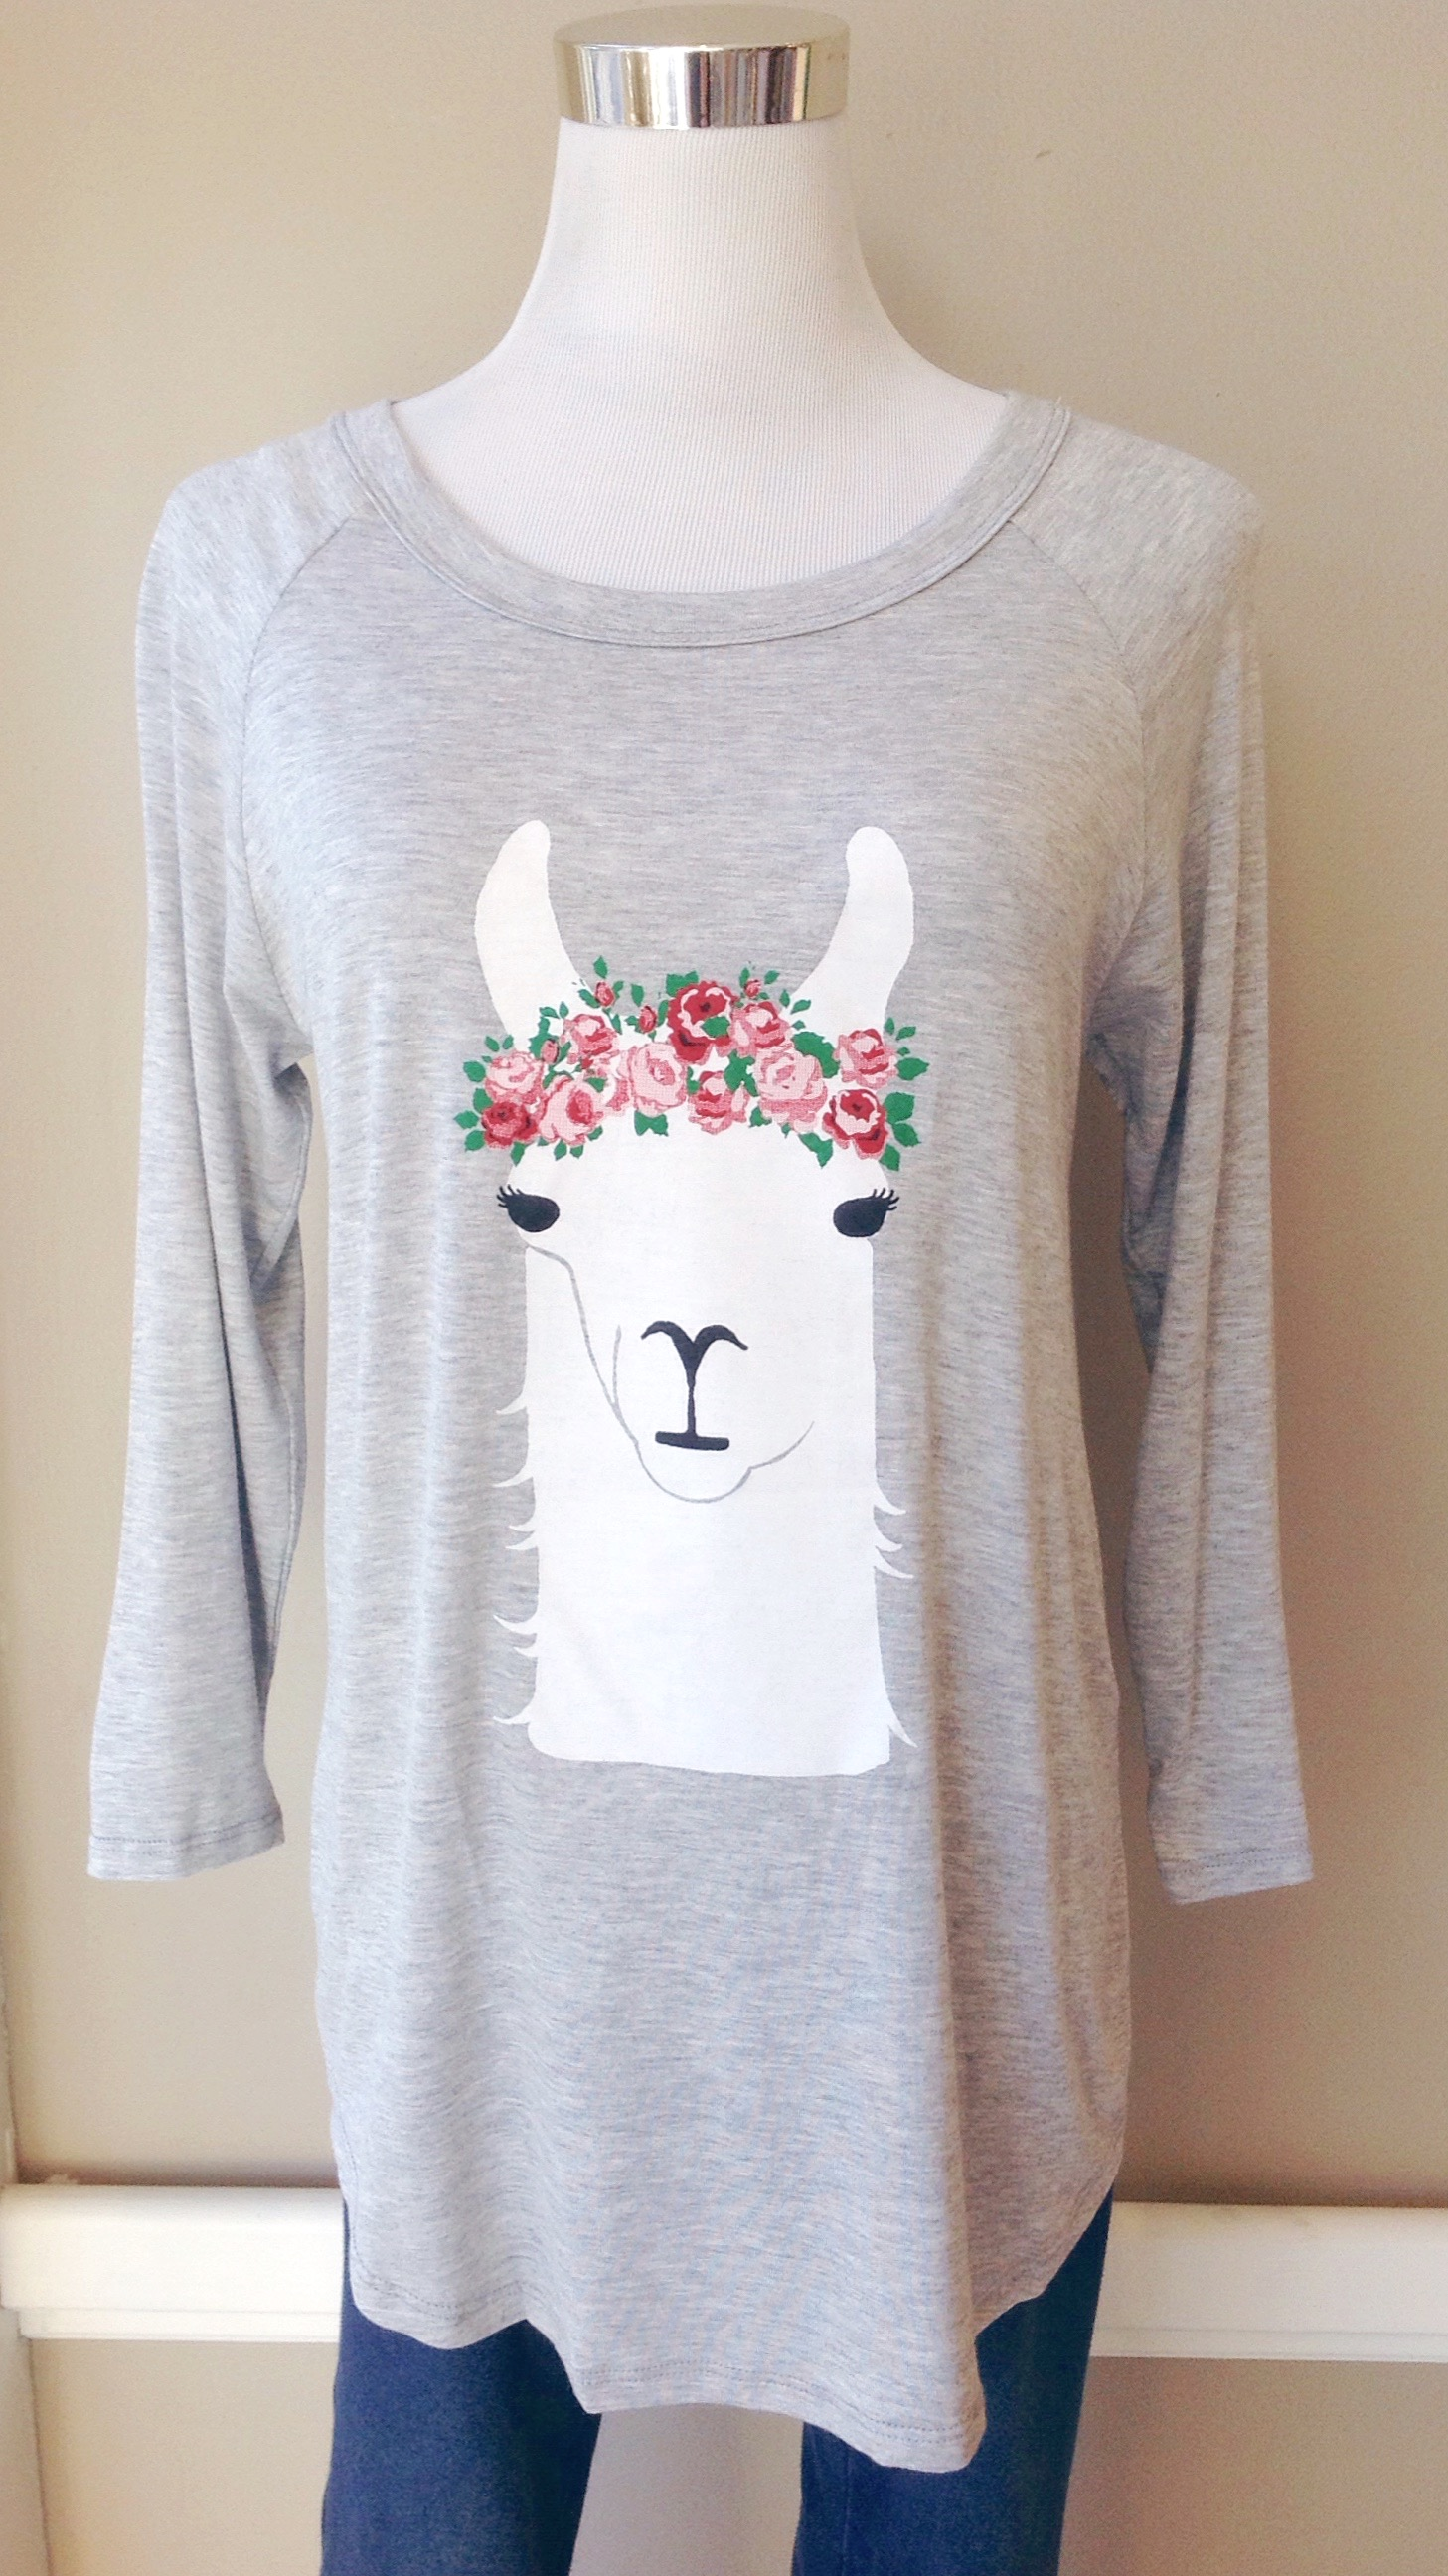 Llama top with raglan sleeves and rounded hem, $34